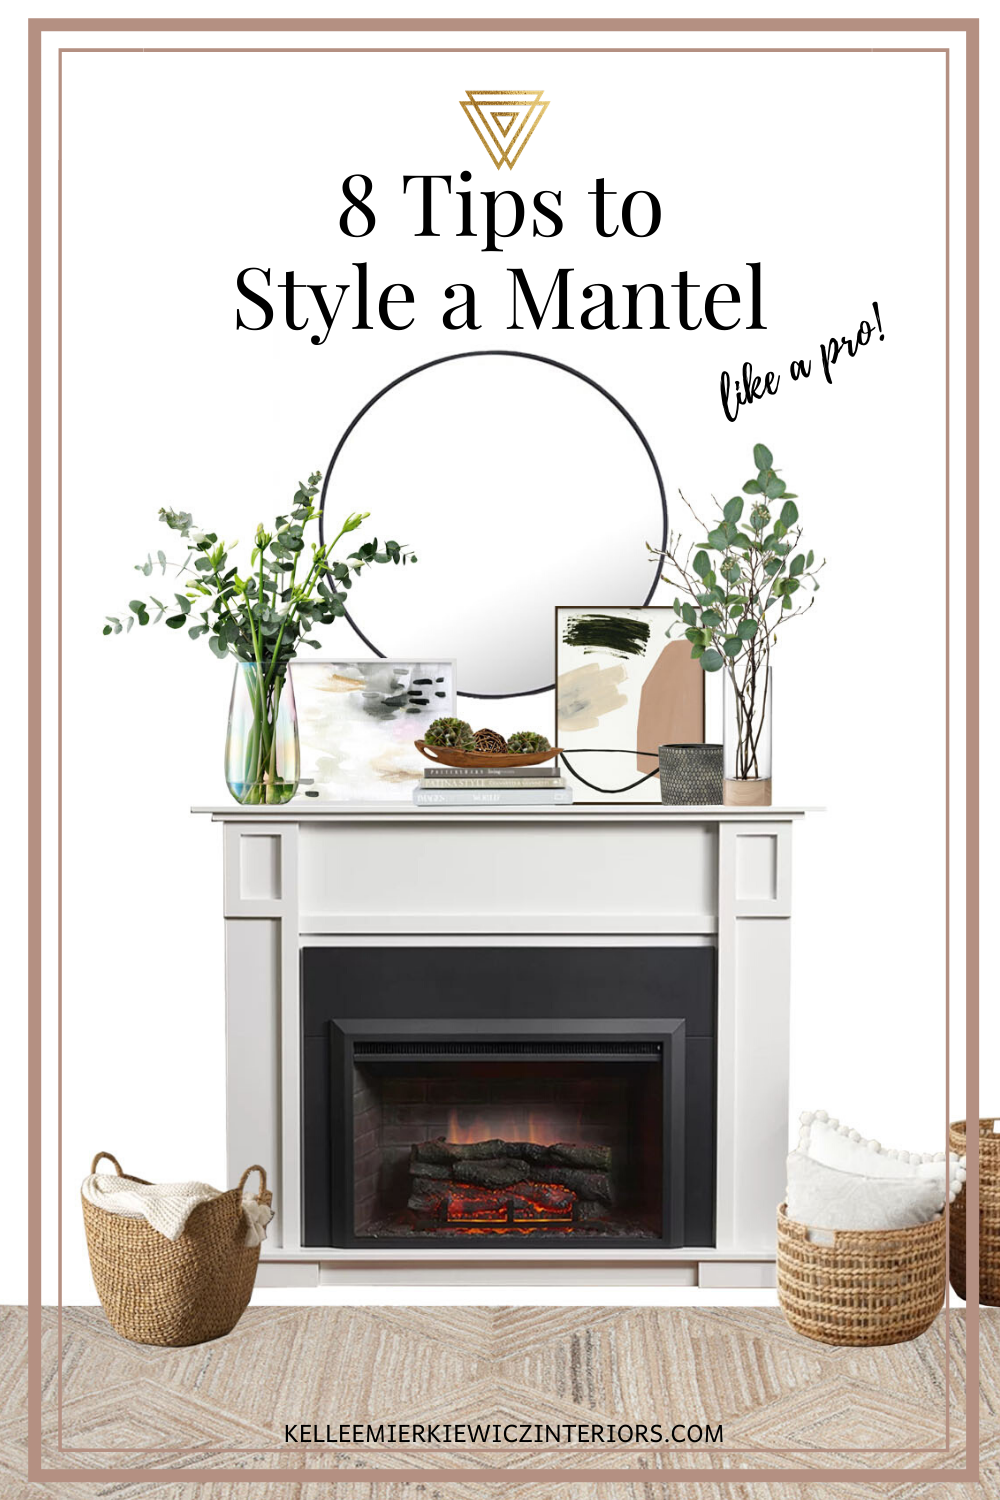 Looking for a way to decorate and style your mantel that is clear and easy to follow? Check out this blog post that will walk you through the steps interior designers use to style a mantel. #mantel #style # decorate #livingroom #fireplace #mirror